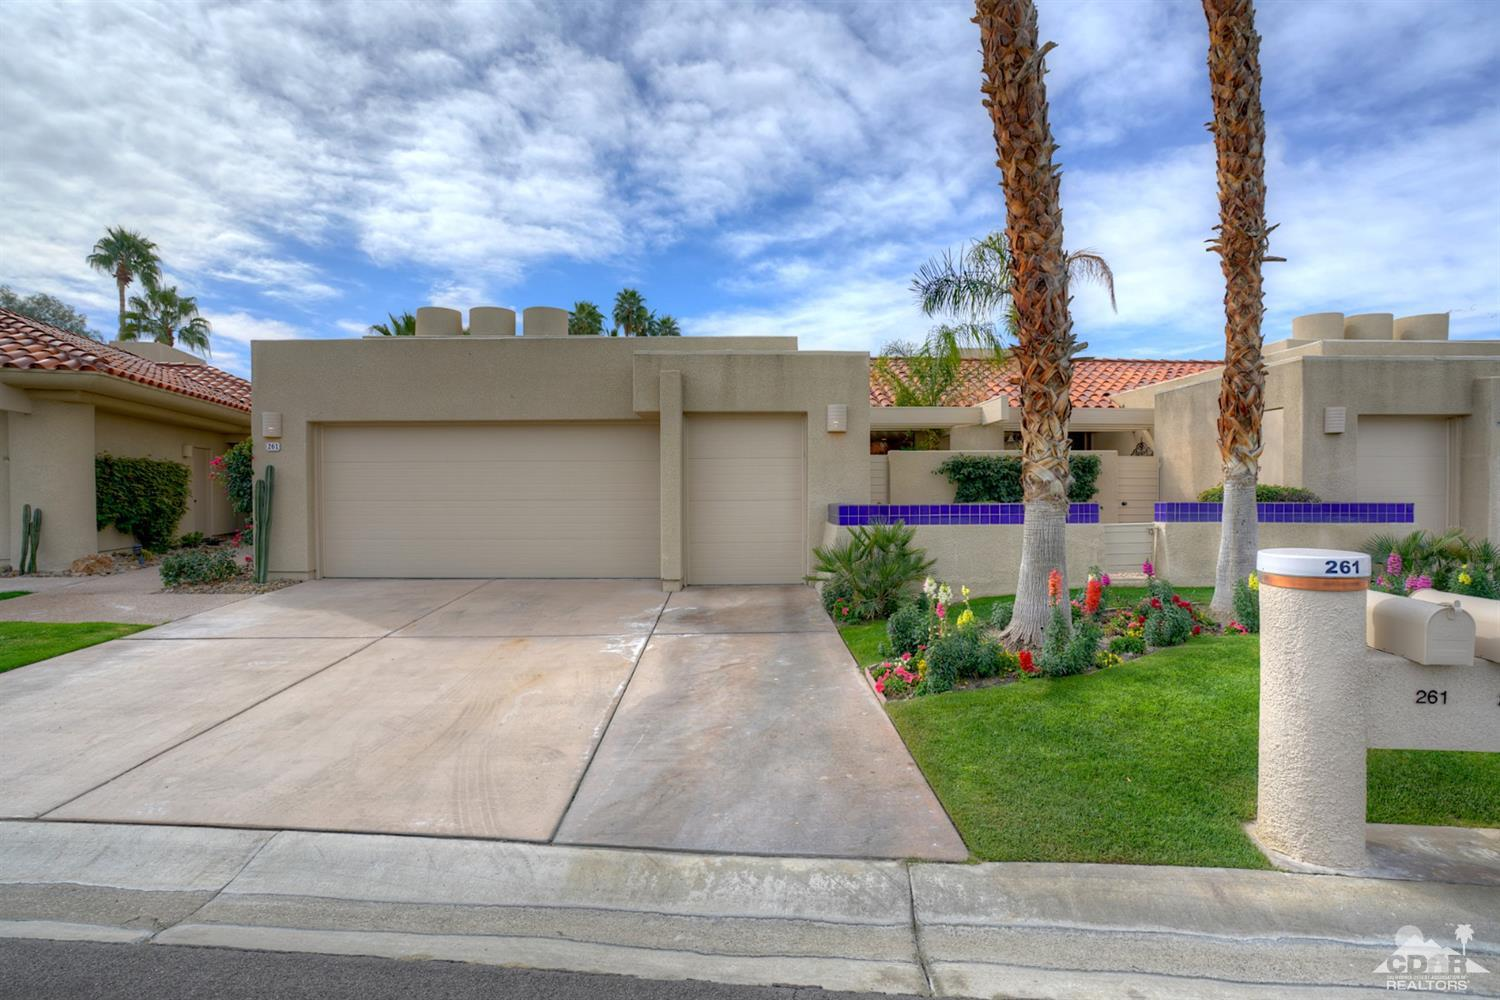 261 Kavenish Drive, Rancho Mirage, CA 92270